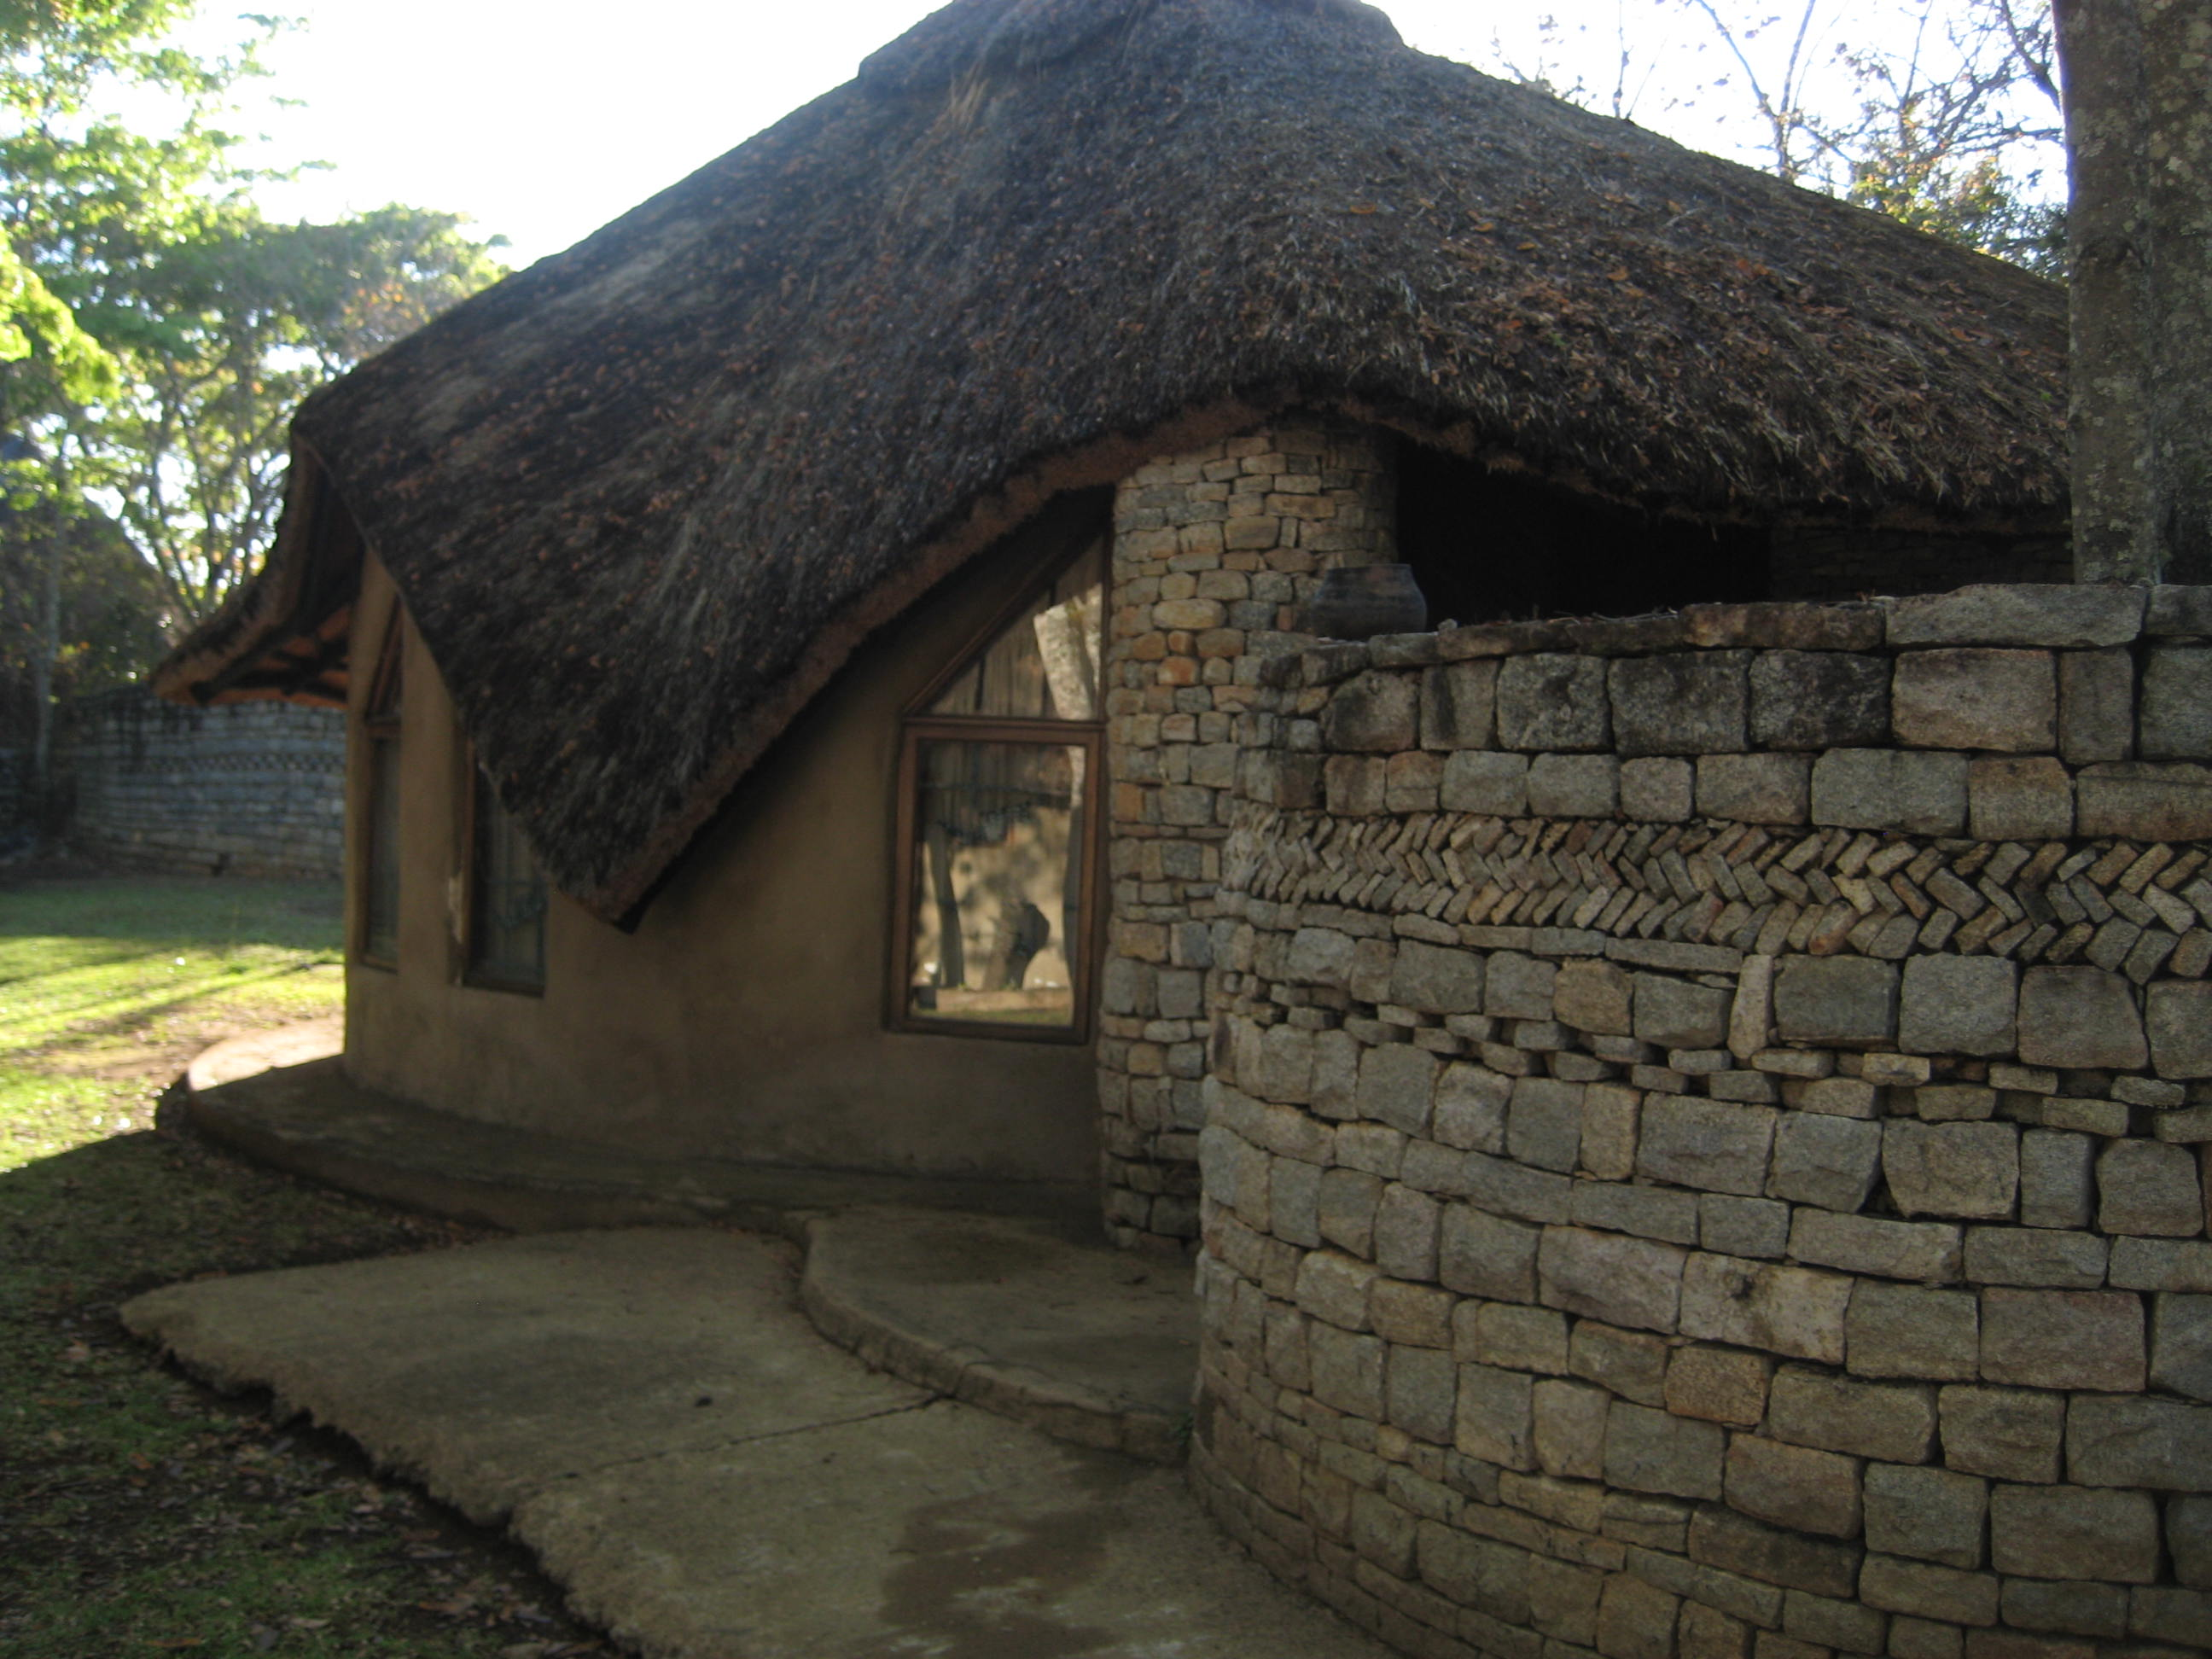 One of the lodges at the complex